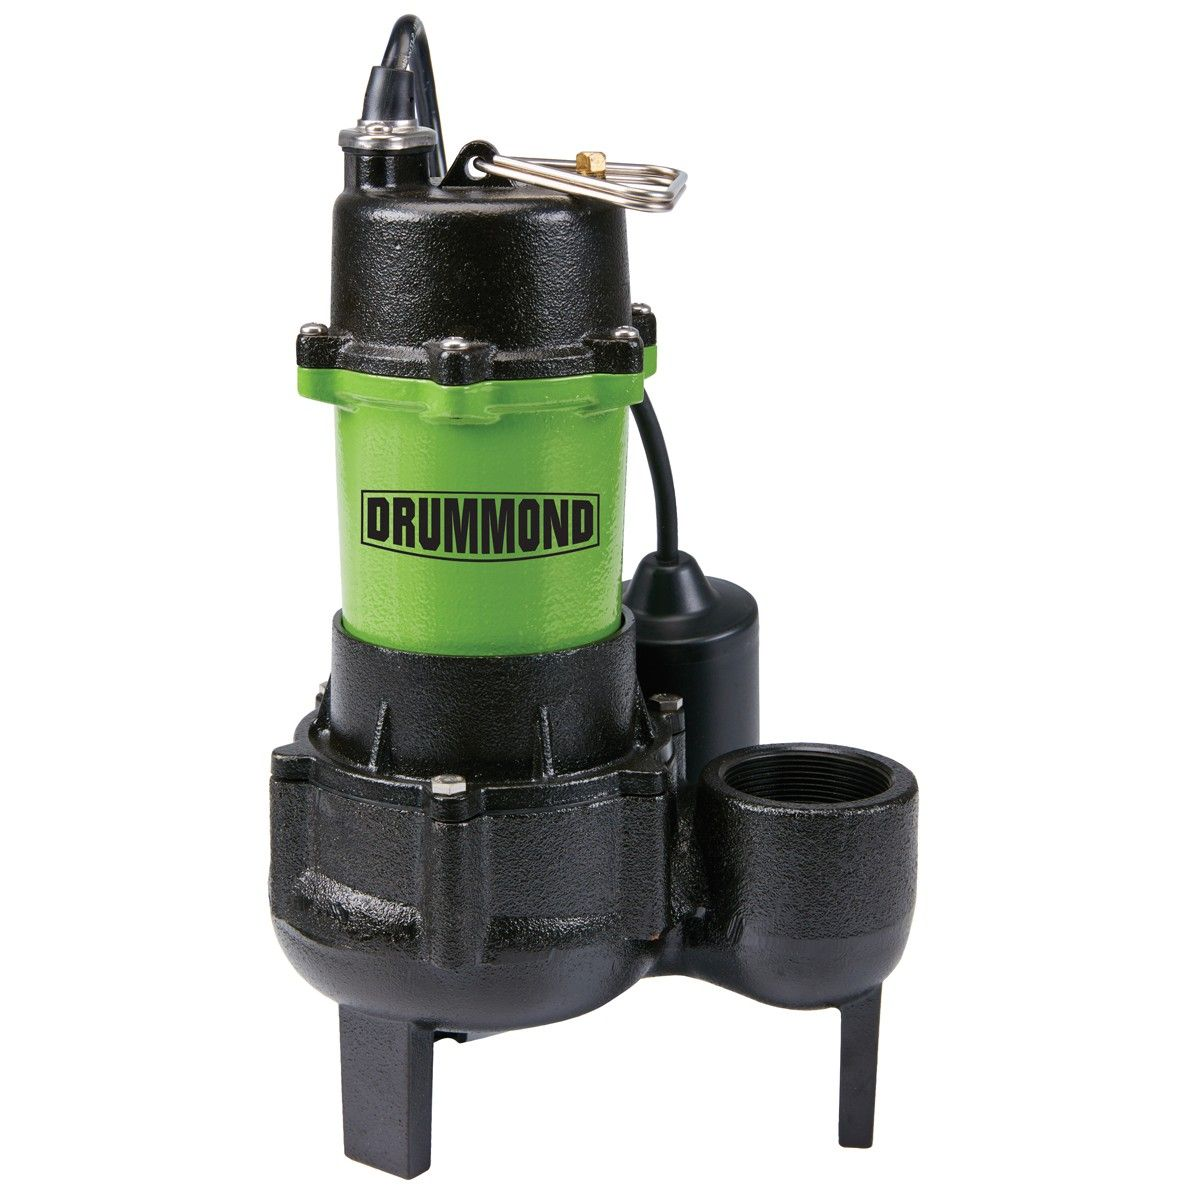 1/2 HP Submersible Sewage Pump with Tether Switch Sewage